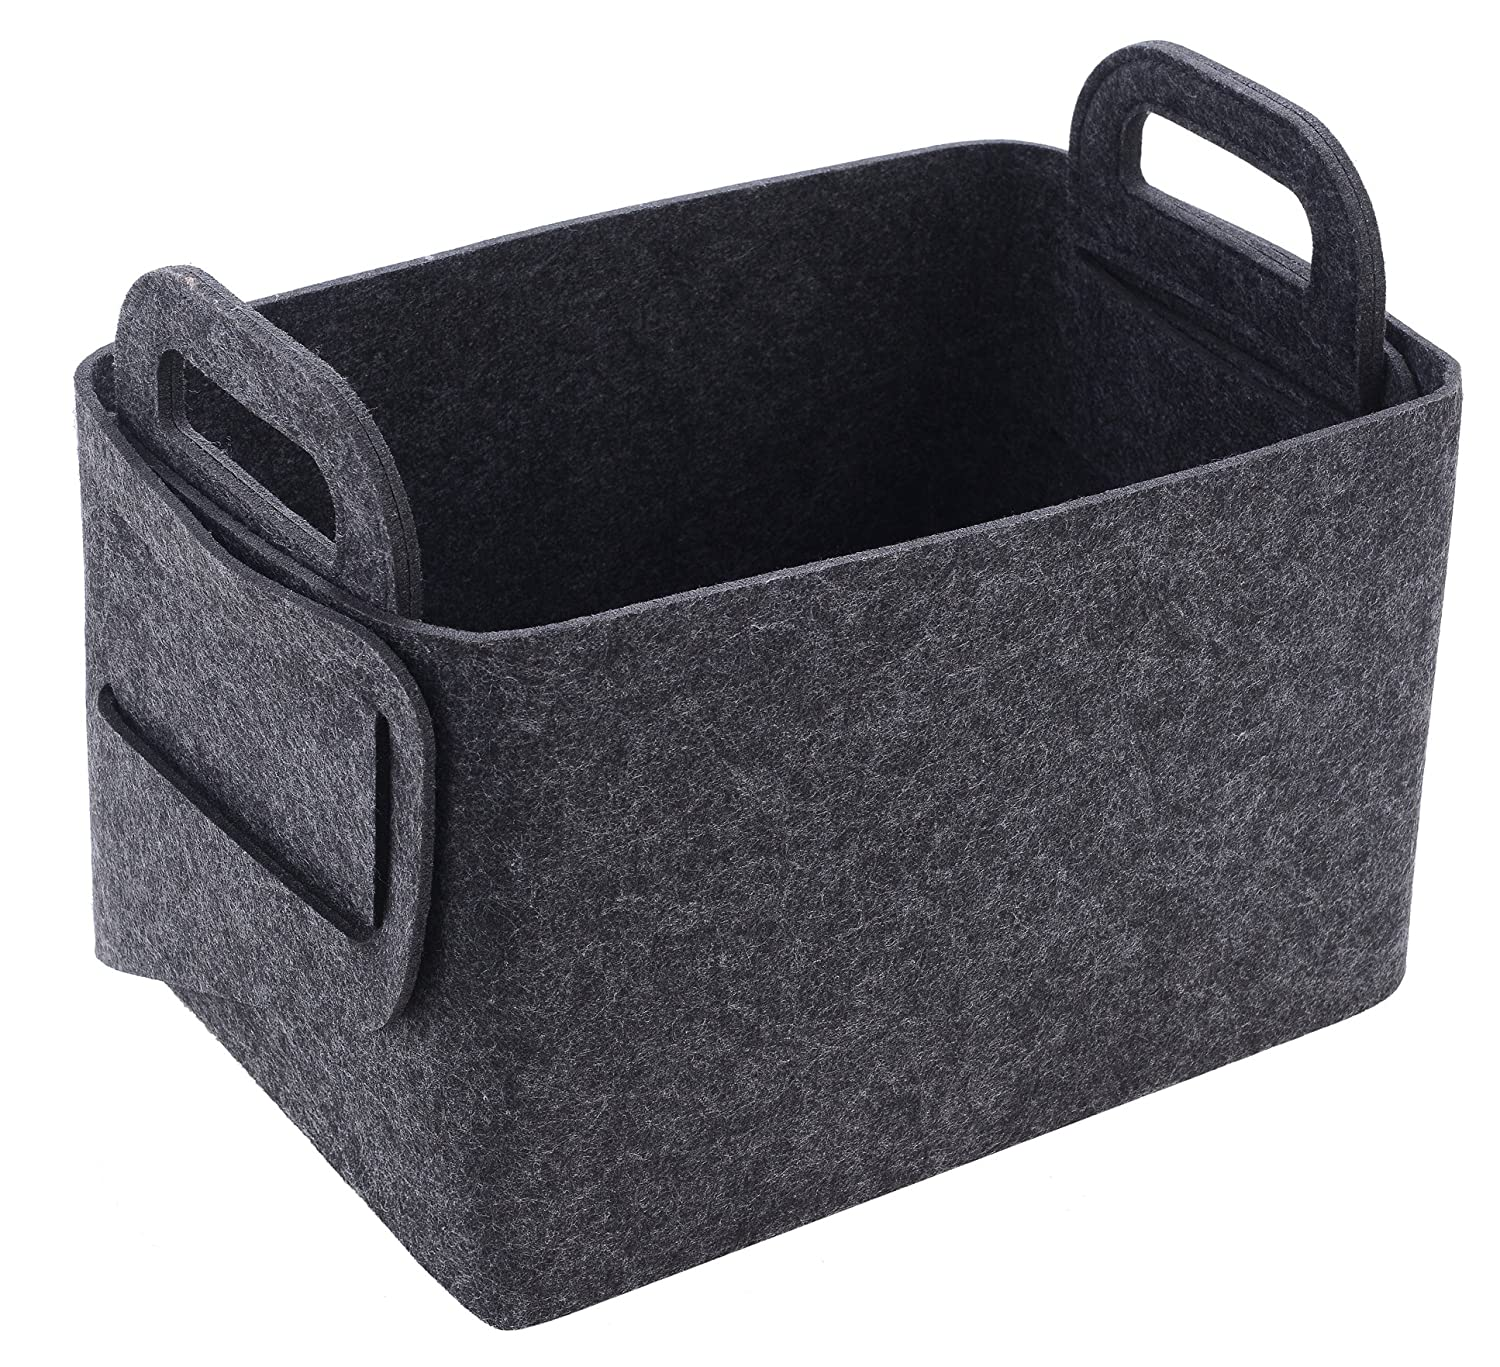 Size:17.9L/×12.2W/×11.6H LTD Felt Storage Basket or Bin Toys Bedroom Laundry Collapsible /& Convenient Storage Solution for Office Dark Grey, Large Xian min lu trade co. Closet